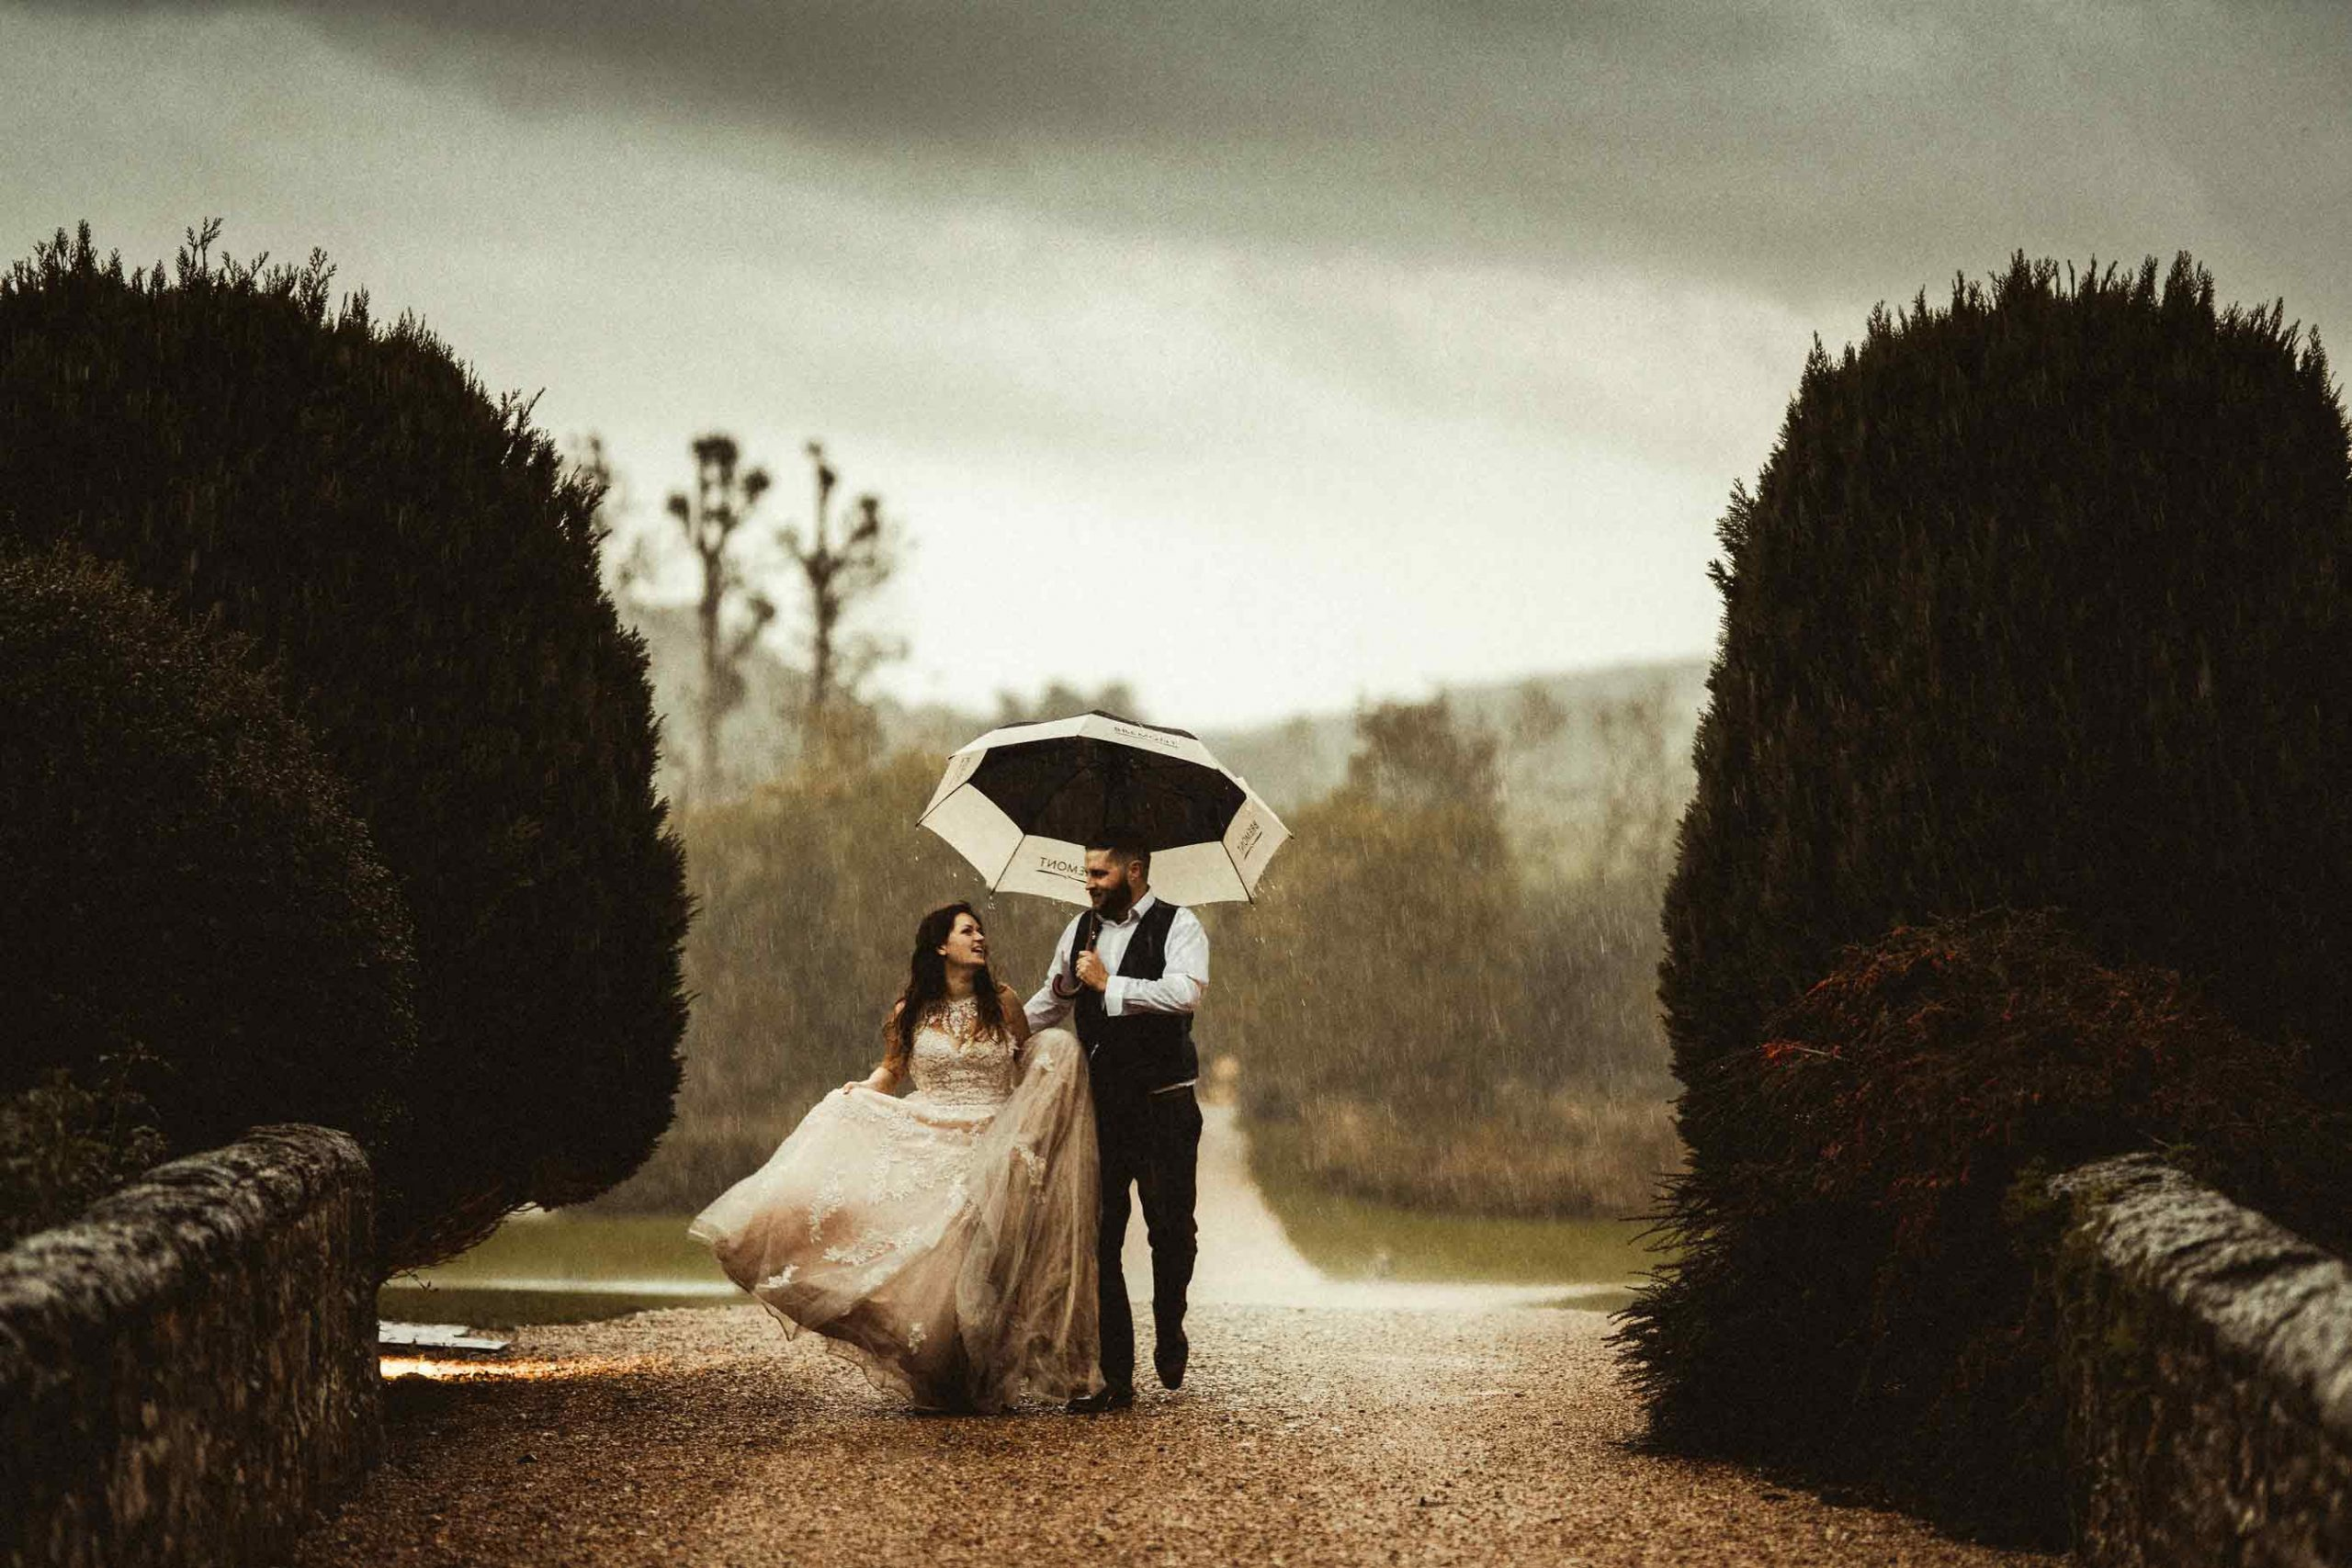 Bride and groom wedding photo in the rain